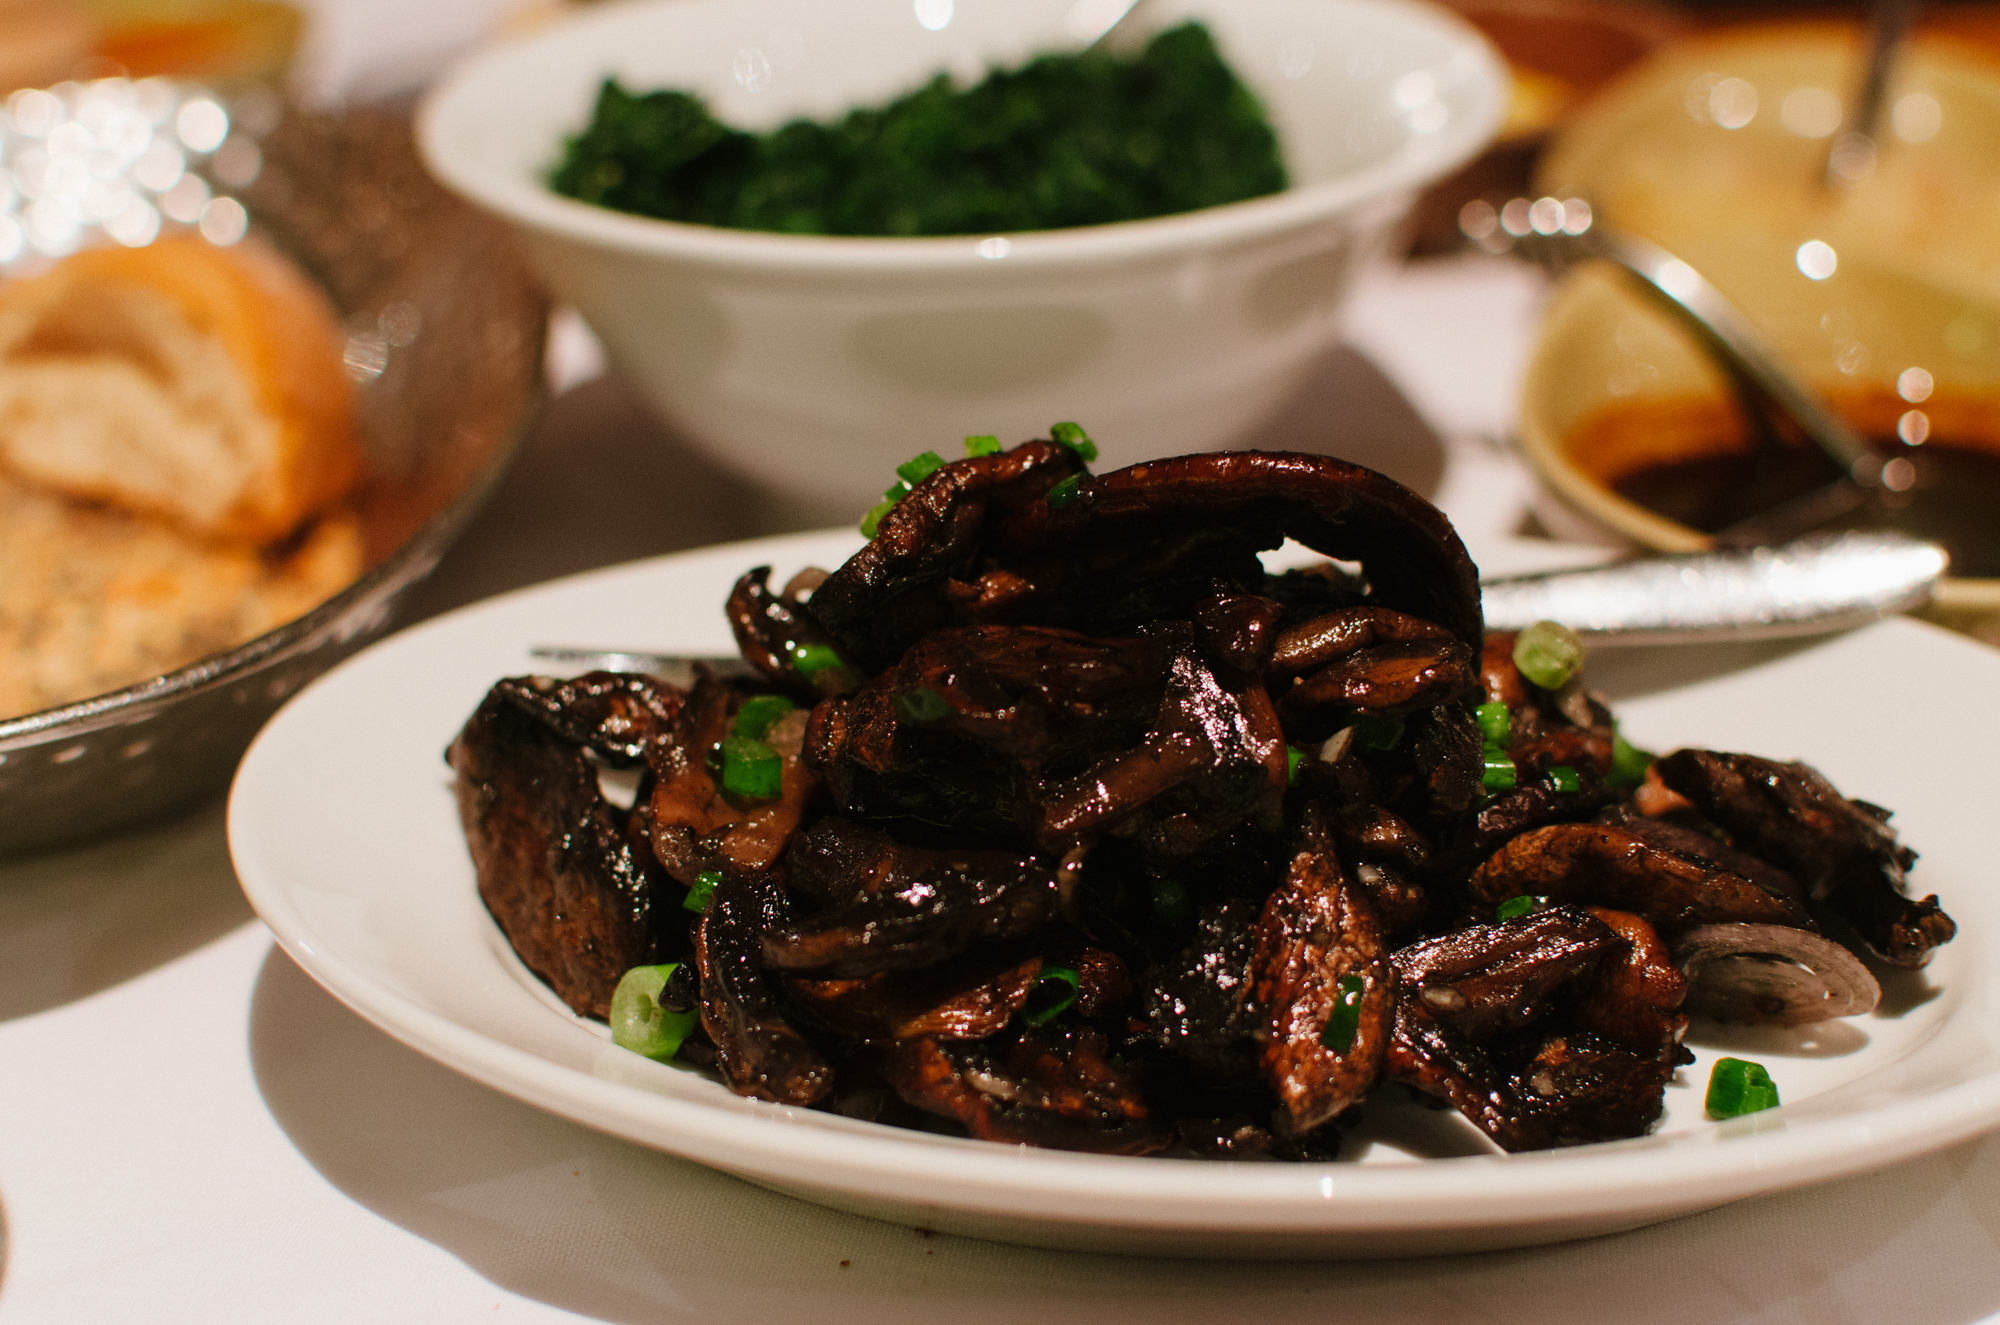 Sautéed YoungSpinach and Wood-roasted Field Mushrooms